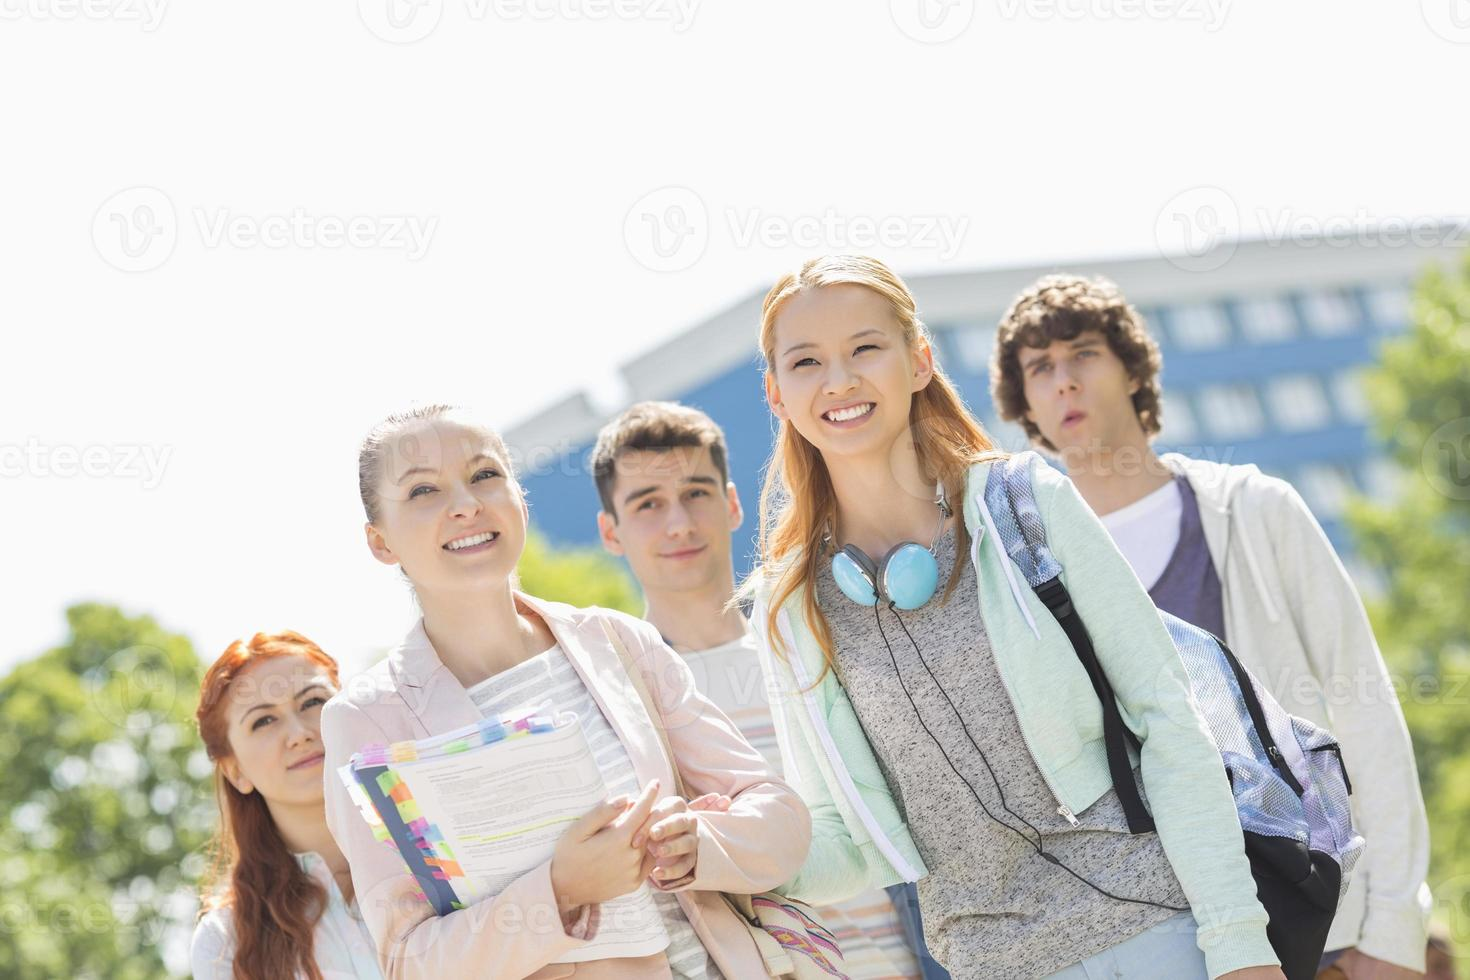 Smiling young students standing together at college campus photo